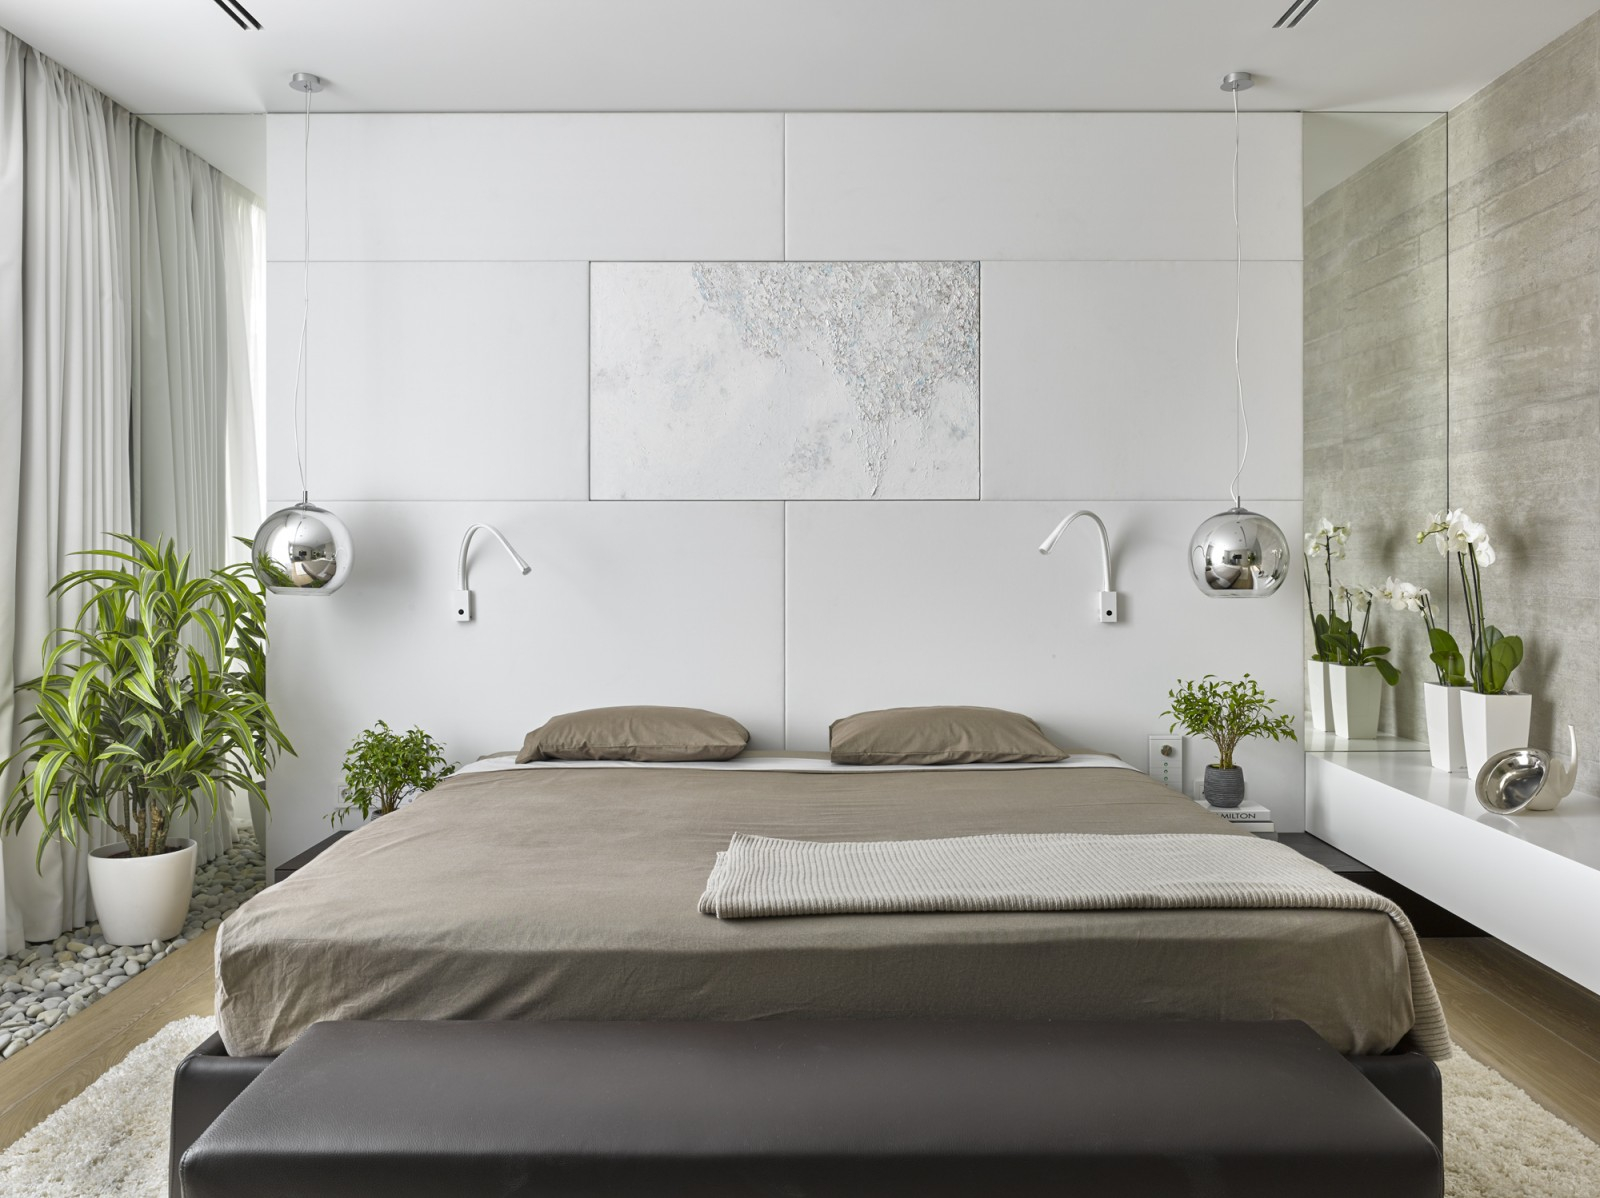 20 Best Small Modern Bedroom Ideas Architecture Beast intended for Bedroom Ideas Modern